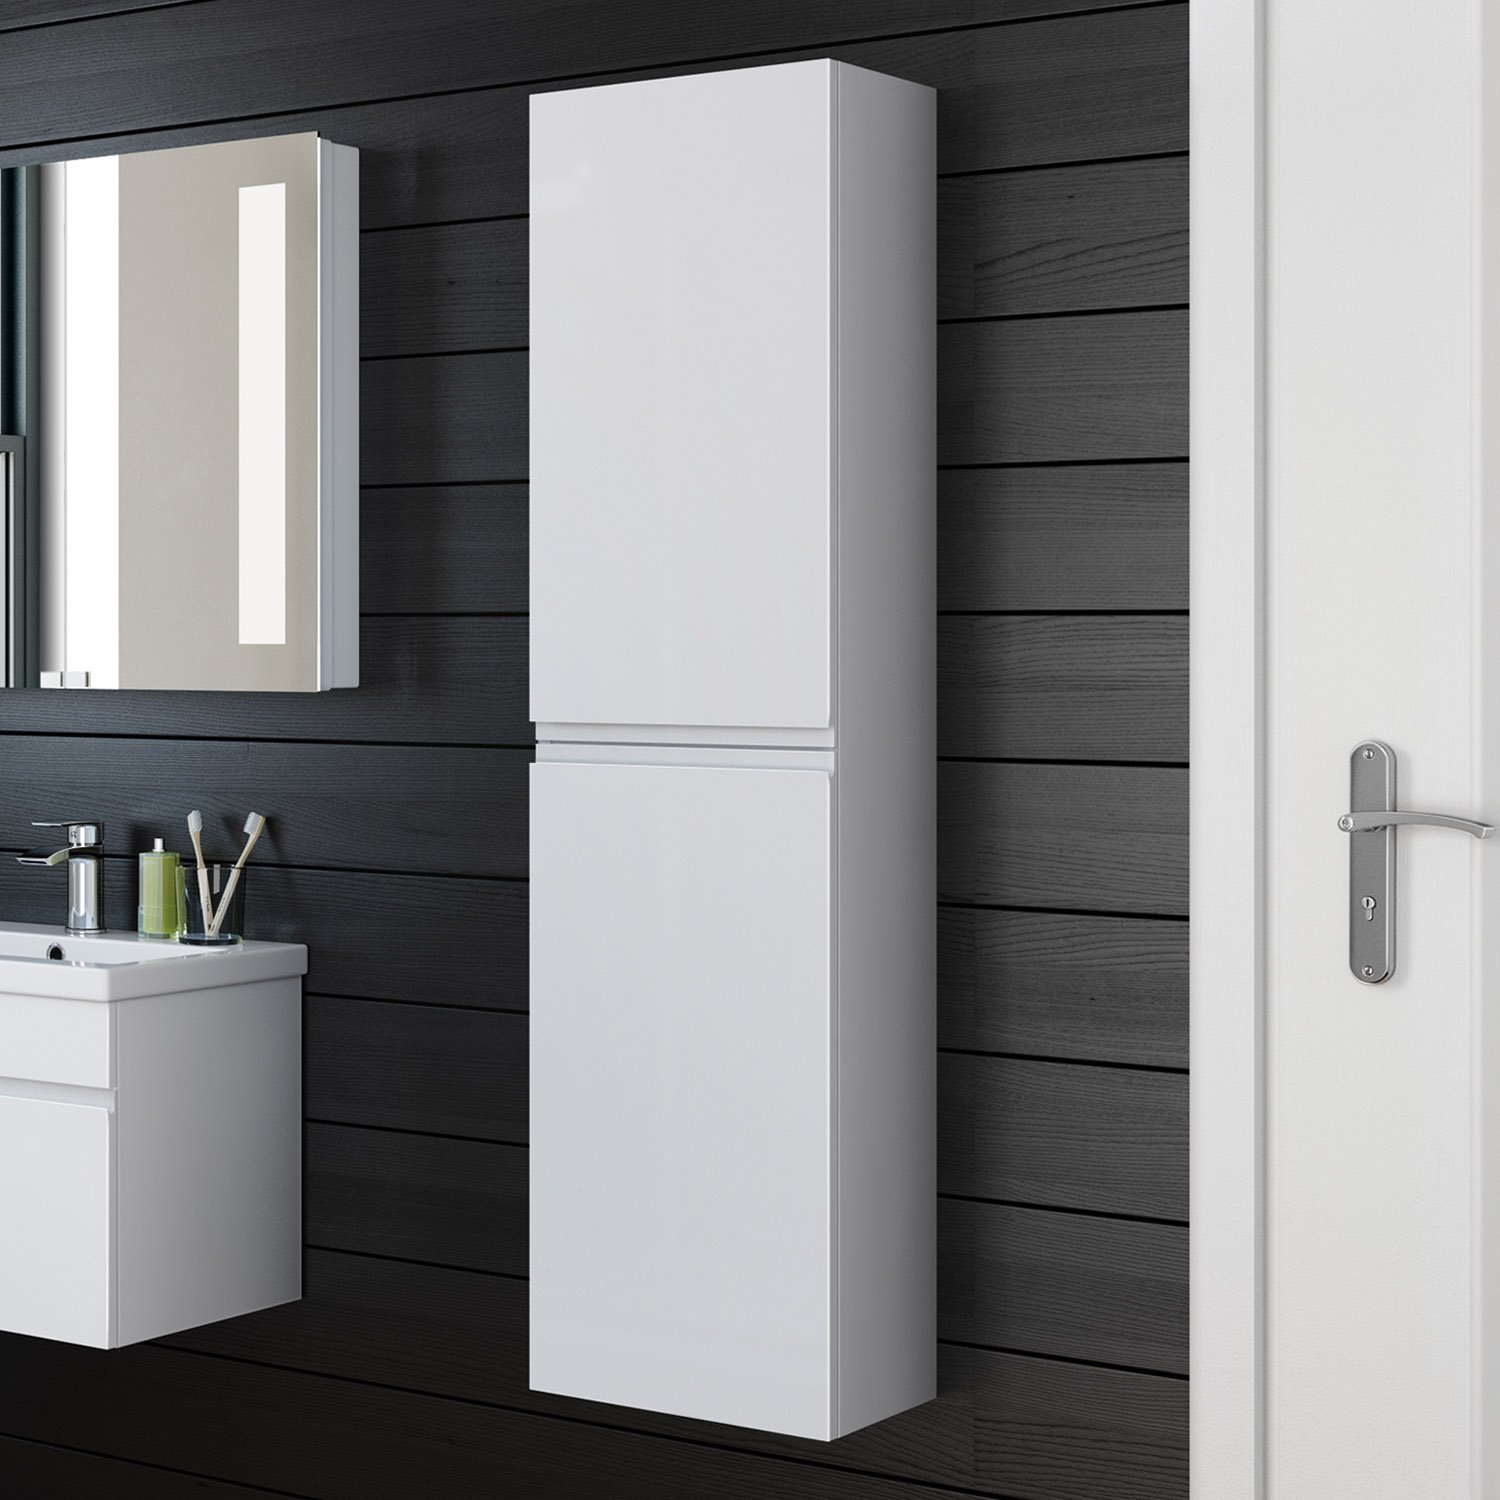 Wall mounted bathroom cabinets white gloss cabinets matttroy for White gloss kitchen wall cupboards